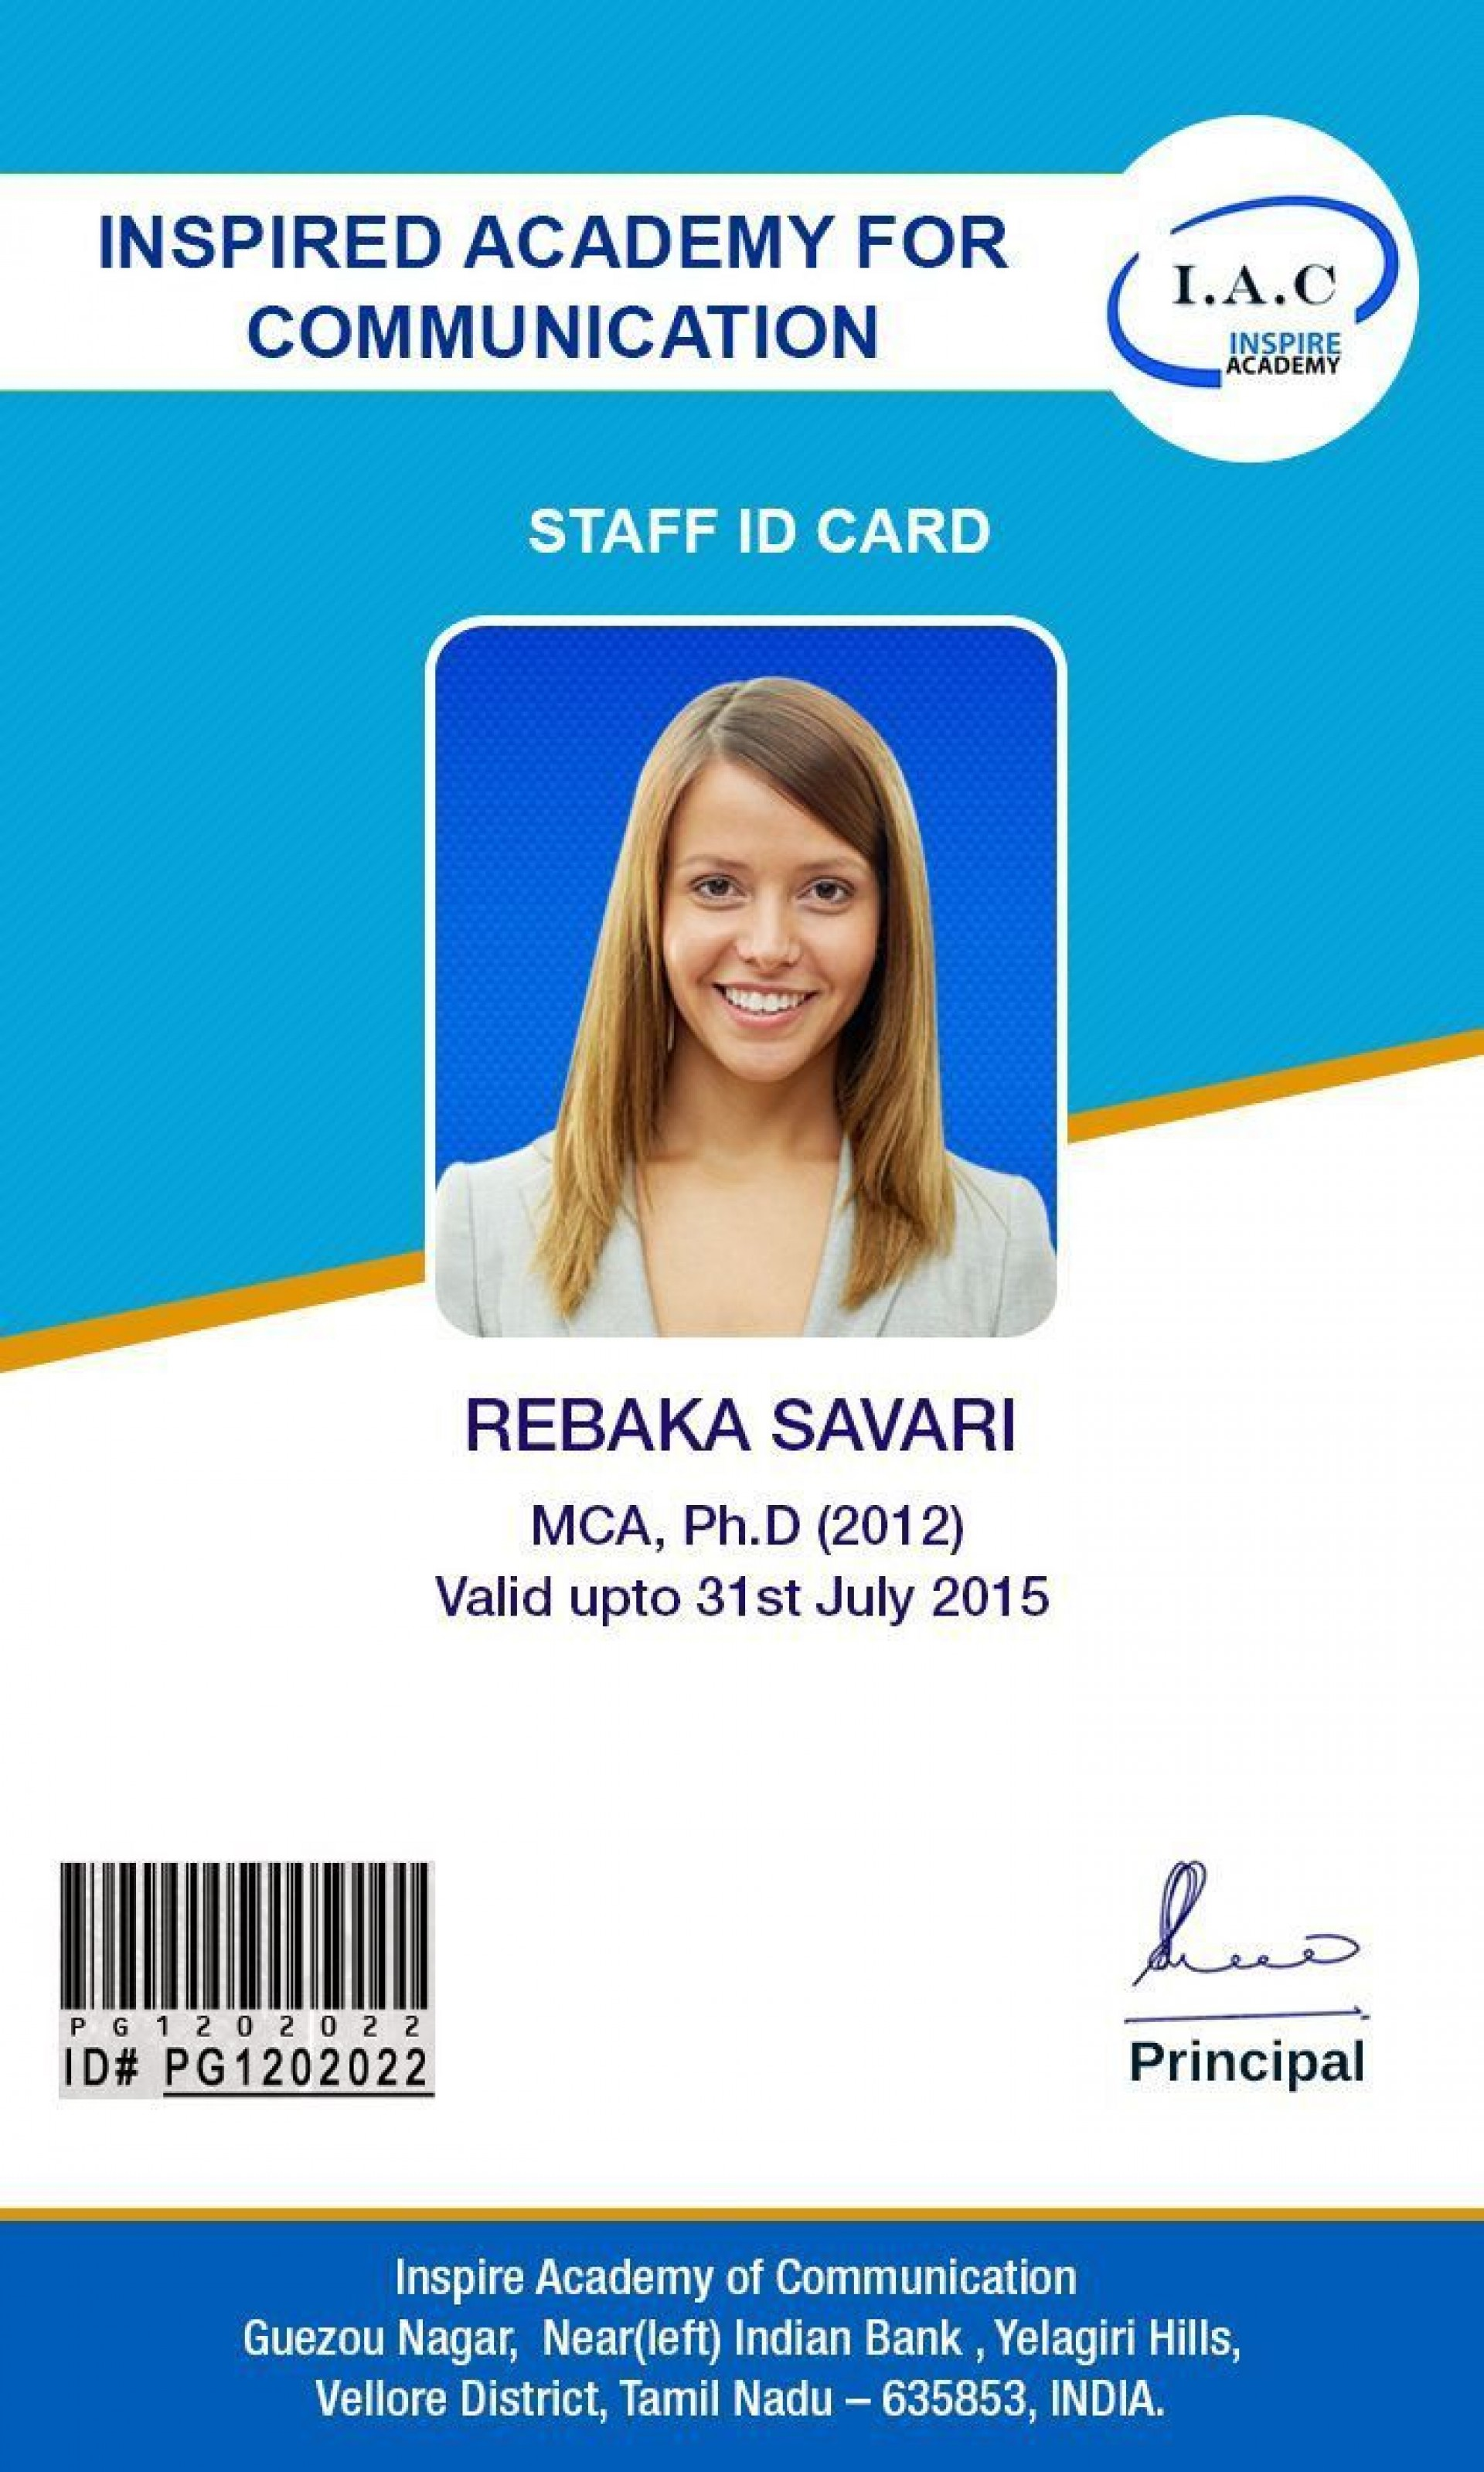 004 Archaicawful Student Id Card Template Picture  Design Free Download Word Employee Microsoft Vertical Identity Psd1920